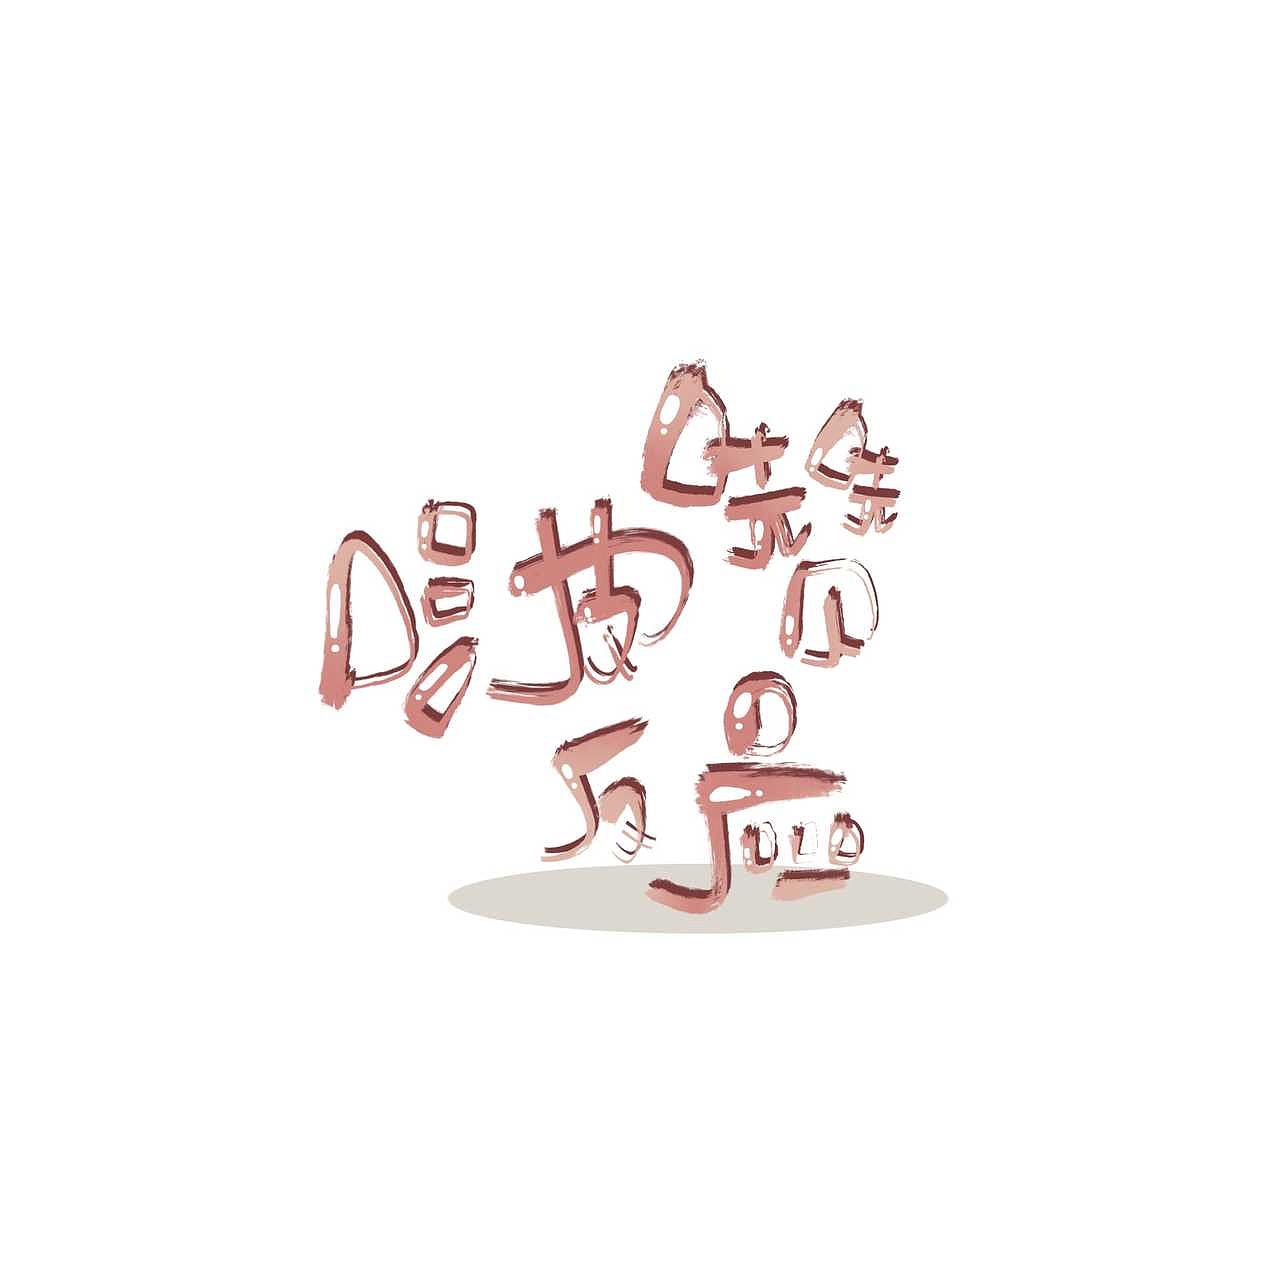 Chinese Creative Font Design-How lovely can be